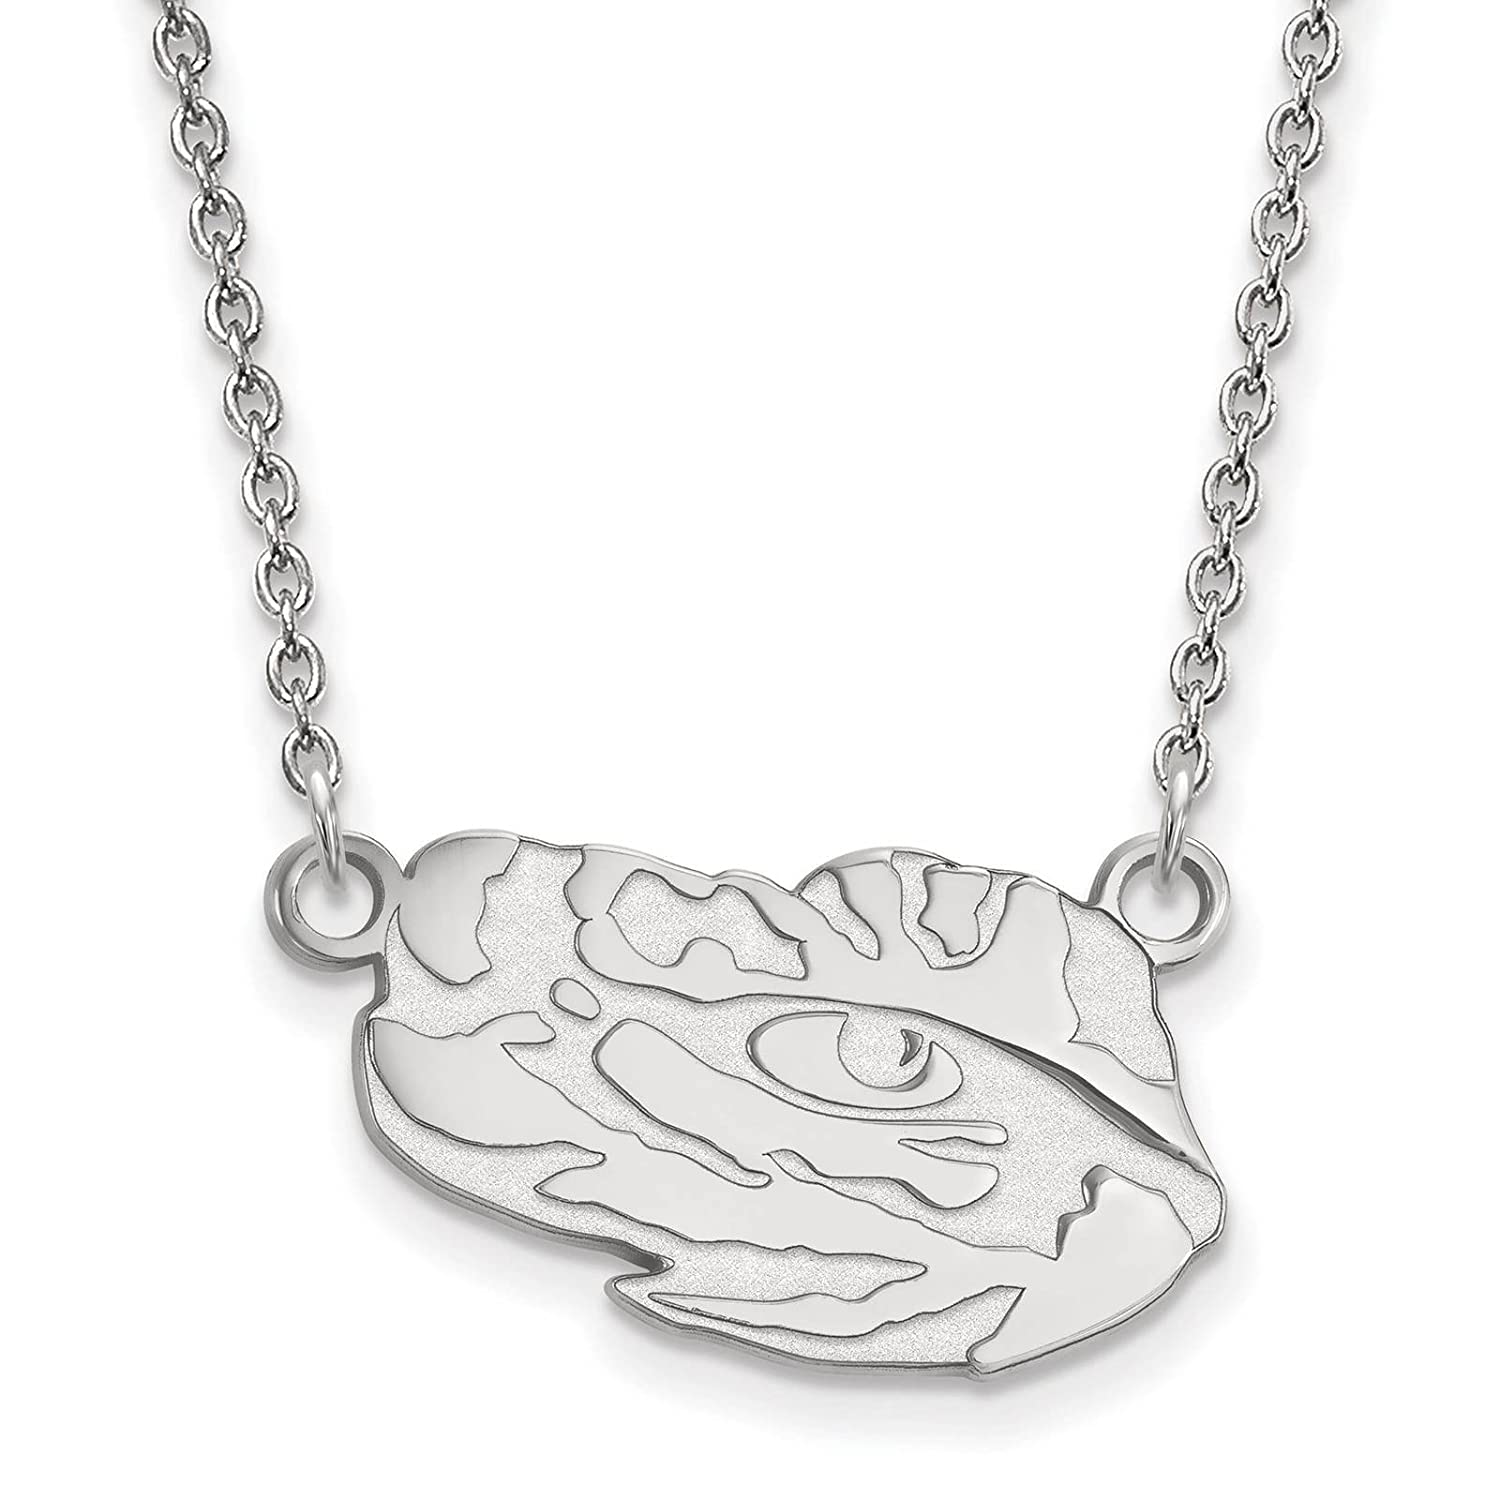 925 Sterling Silver Rhodium-plated Laser-cut Louisiana State University Small Pendant w//Necklace 18